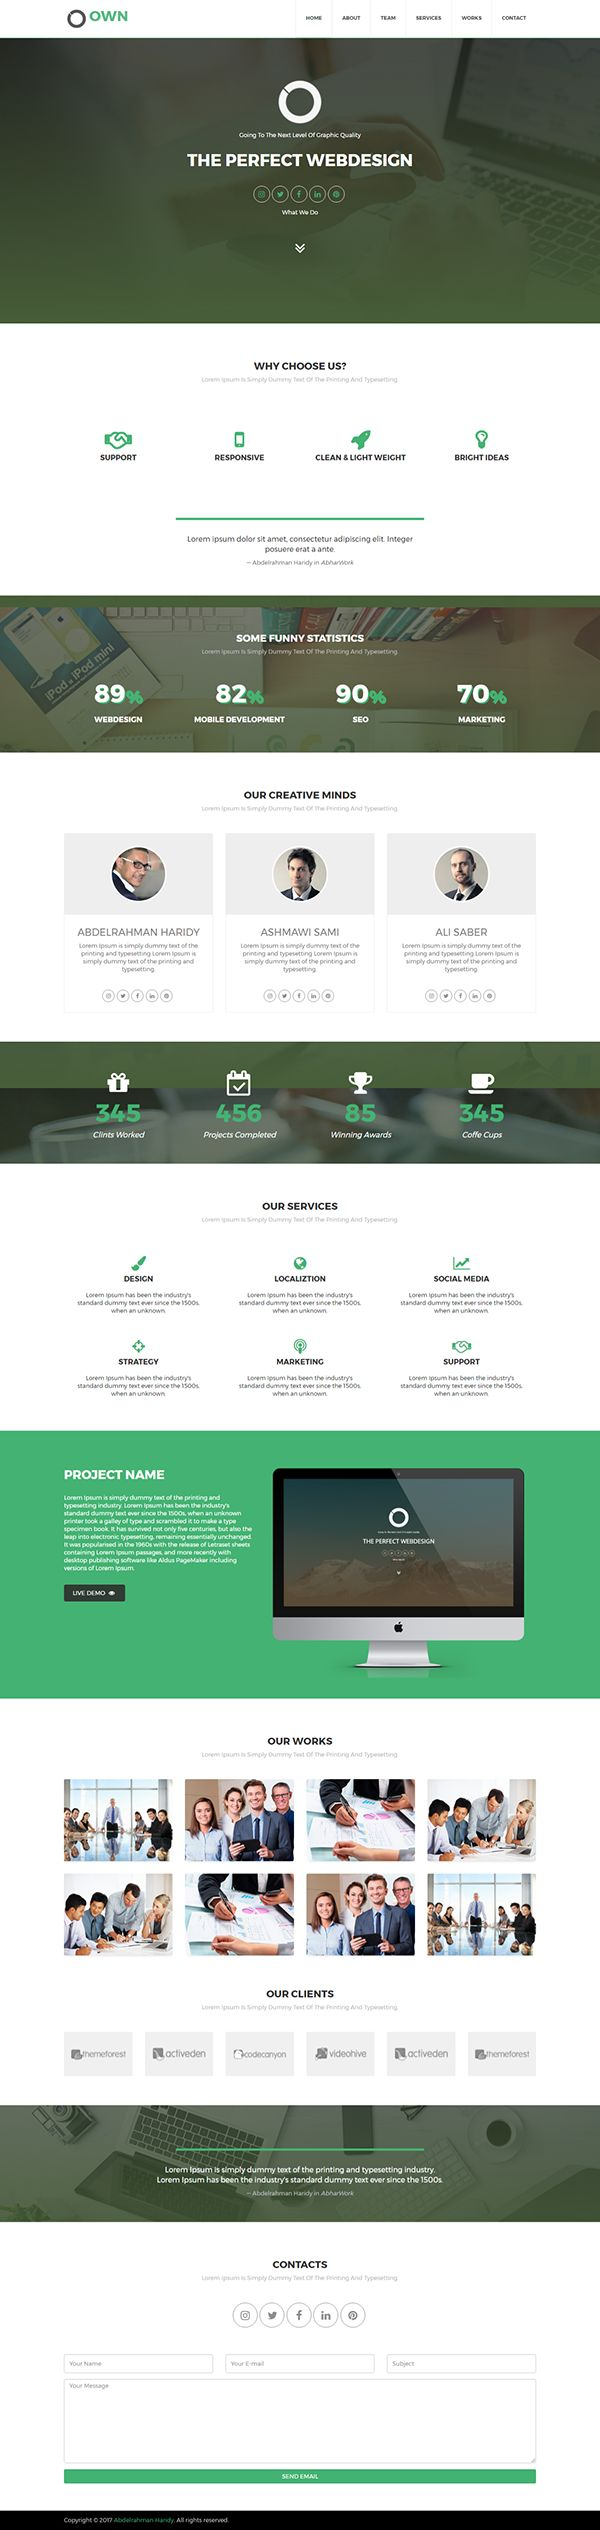 Jquery plugins to work with data presentation and grid layout - Own Responsive Html5 Template 40 Off All What You Need For Your Business